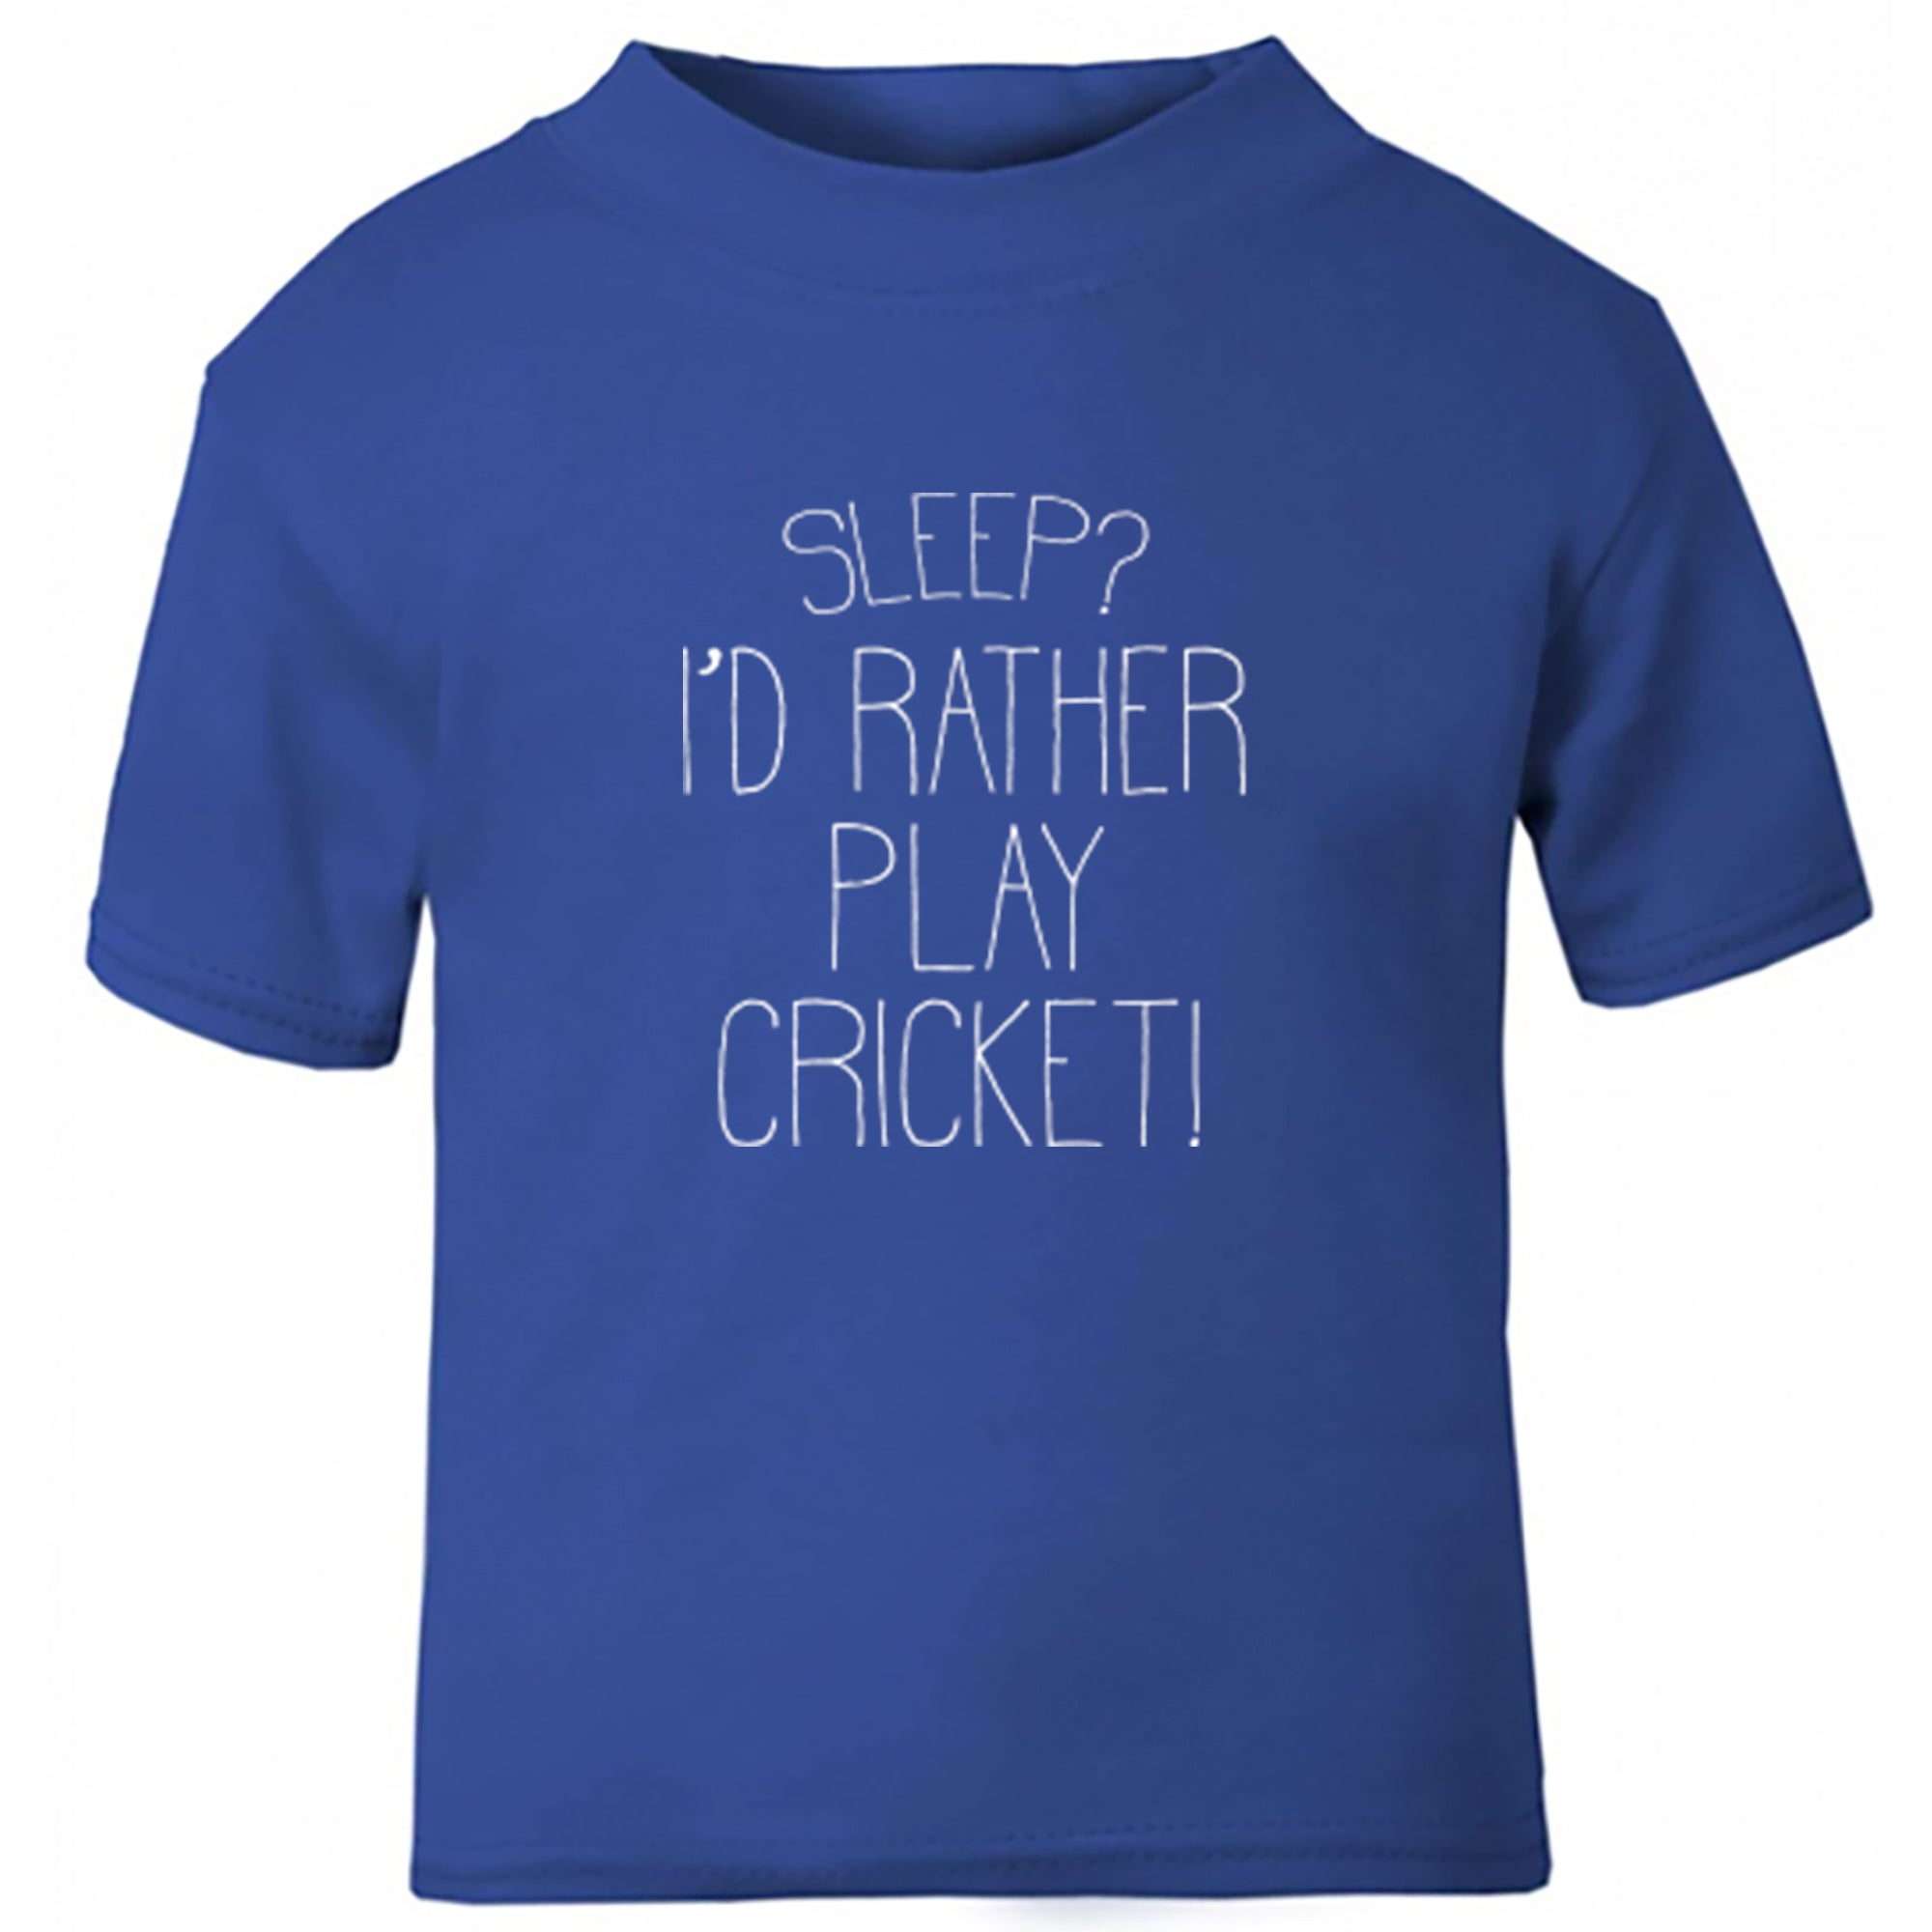 Sleep? I'd Rather Play Cricket! Childrens Ages 3/4-12/14 Unisex Fit T-Shirt S0473 - Illustrated Identity Ltd.